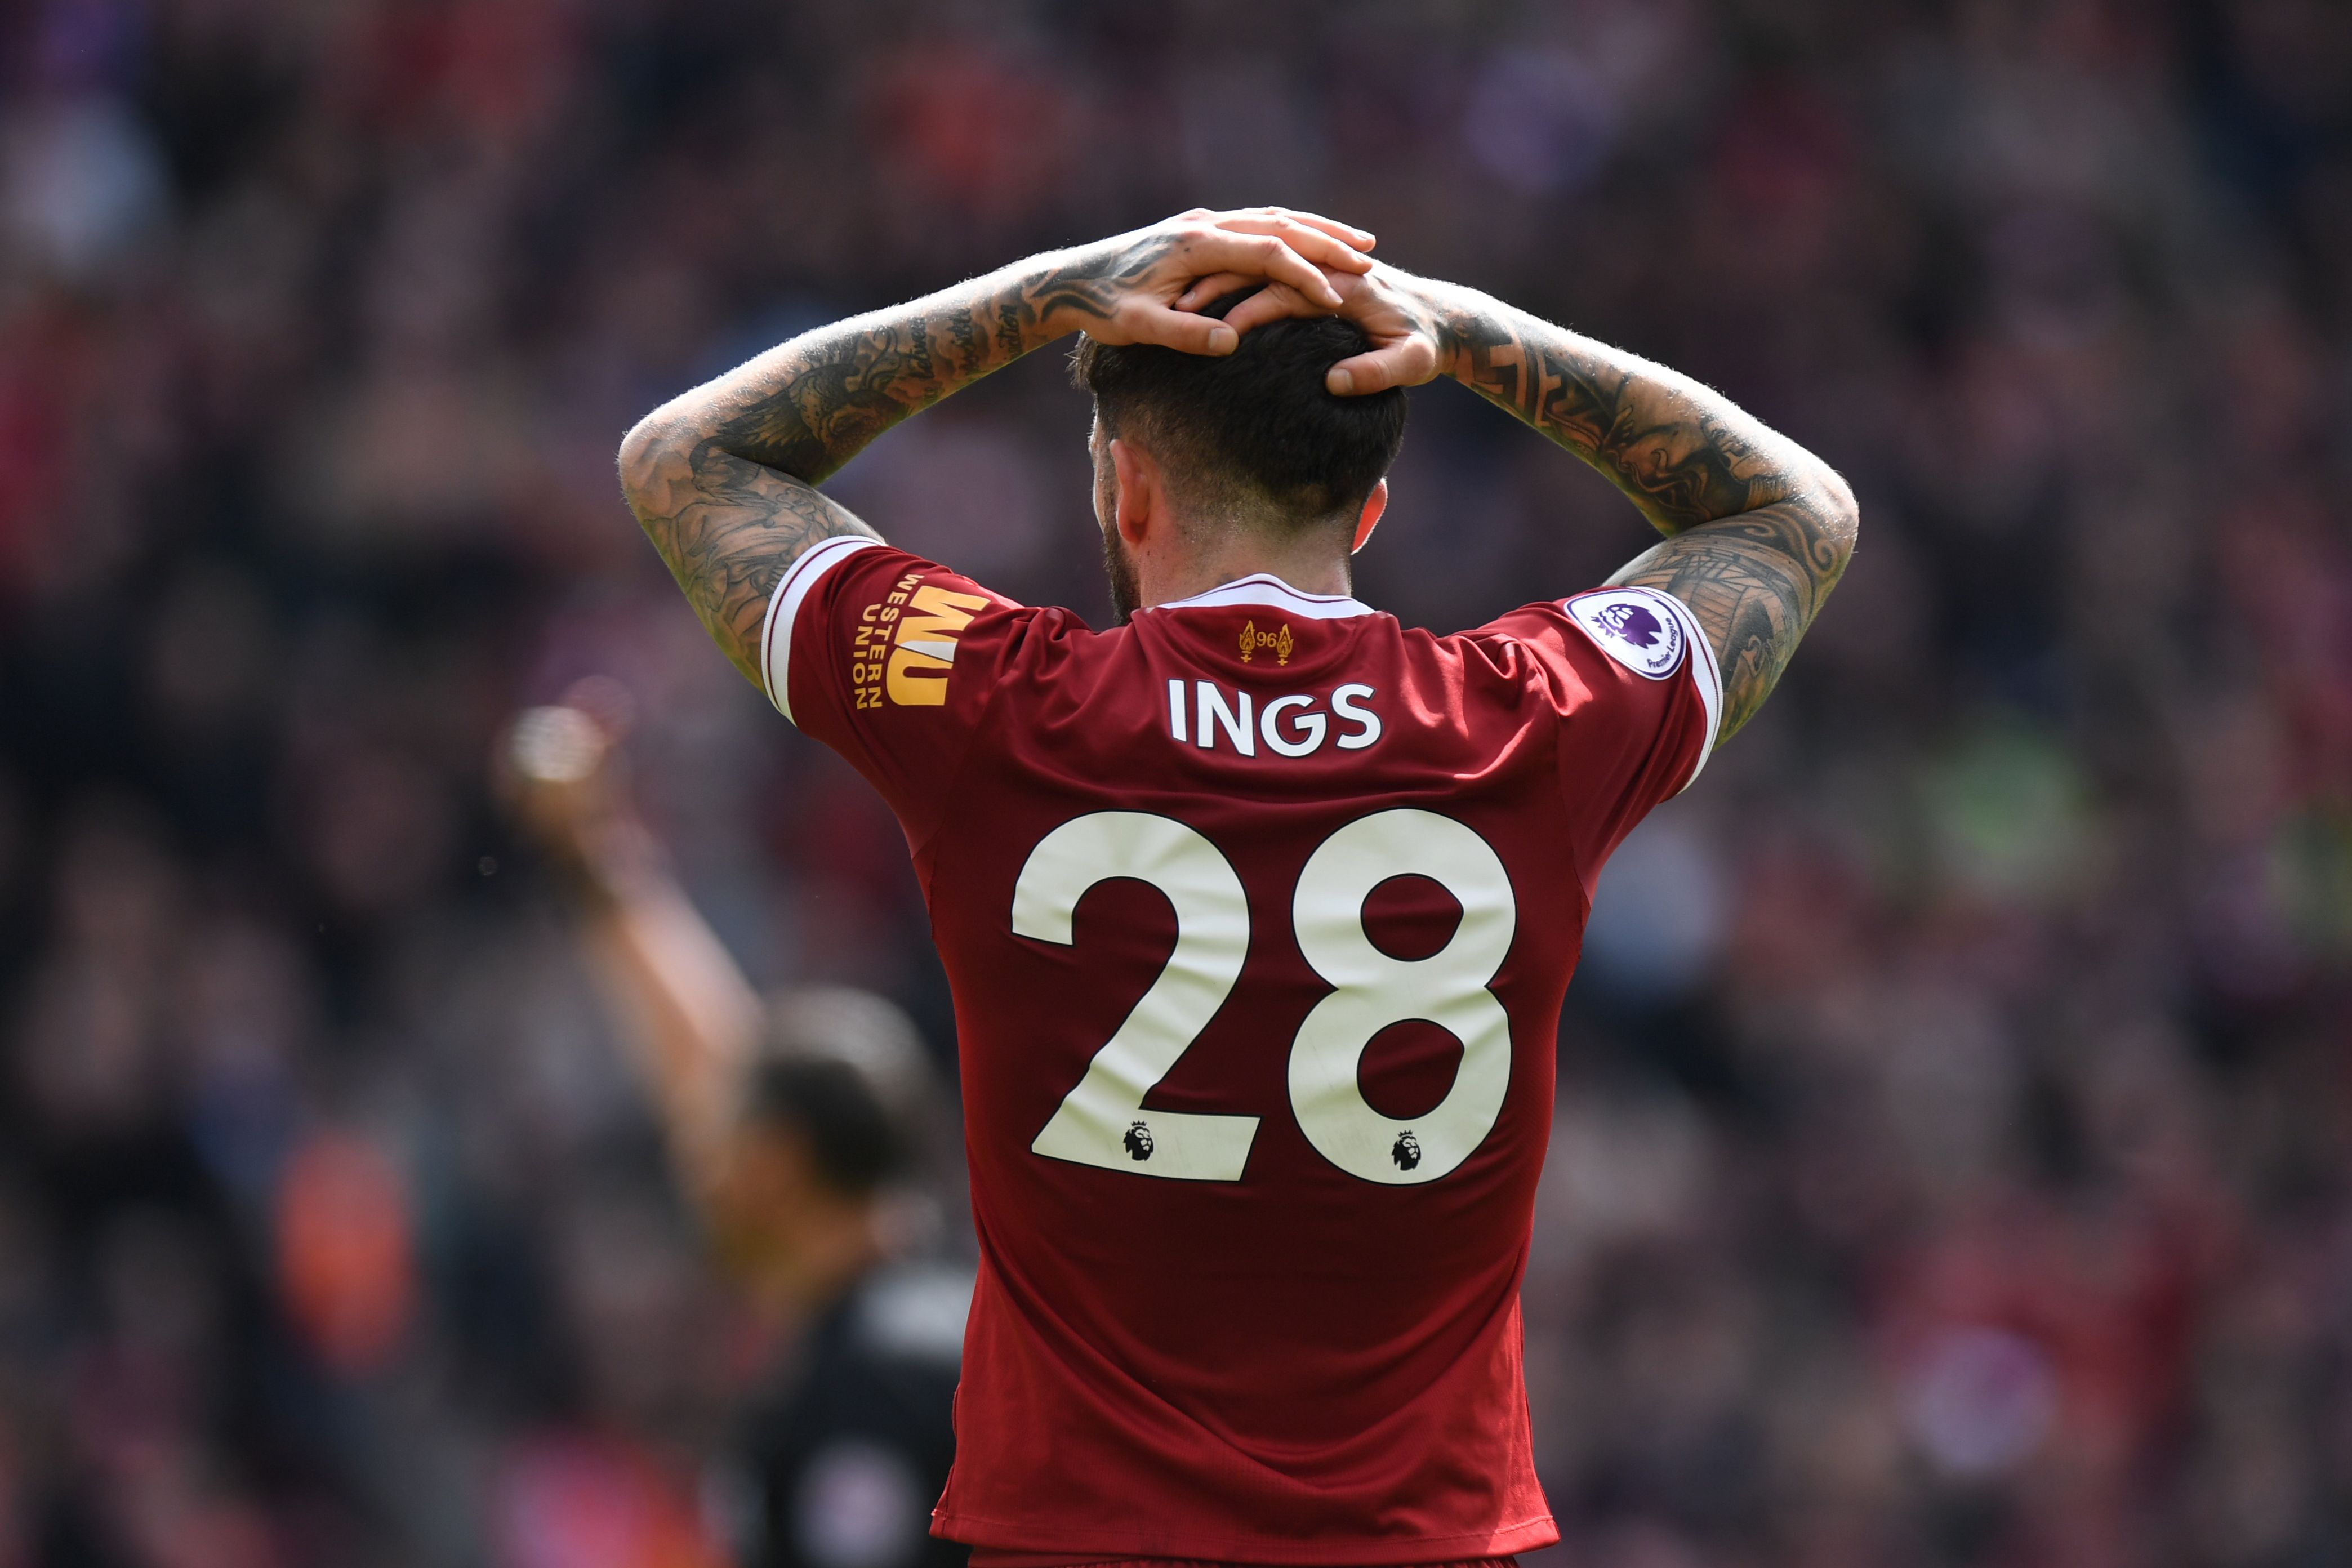 Liverpool's English striker Danny Ings reacts to his shot at goal ruled off-side during the English Premier League football match between Liverpool and Stoke City at Anfield in Liverpool, north west England on April 28, 2018. (Photo by Paul ELLIS / AFP) / RESTRICTED TO EDITORIAL USE. No use with unauthorized audio, video, data, fixture lists, club/league logos or 'live' services. Online in-match use limited to 75 images, no video emulation. No use in betting, games or single club/league/player publications. / (Photo credit should read PAUL ELLIS/AFP/Getty Images)